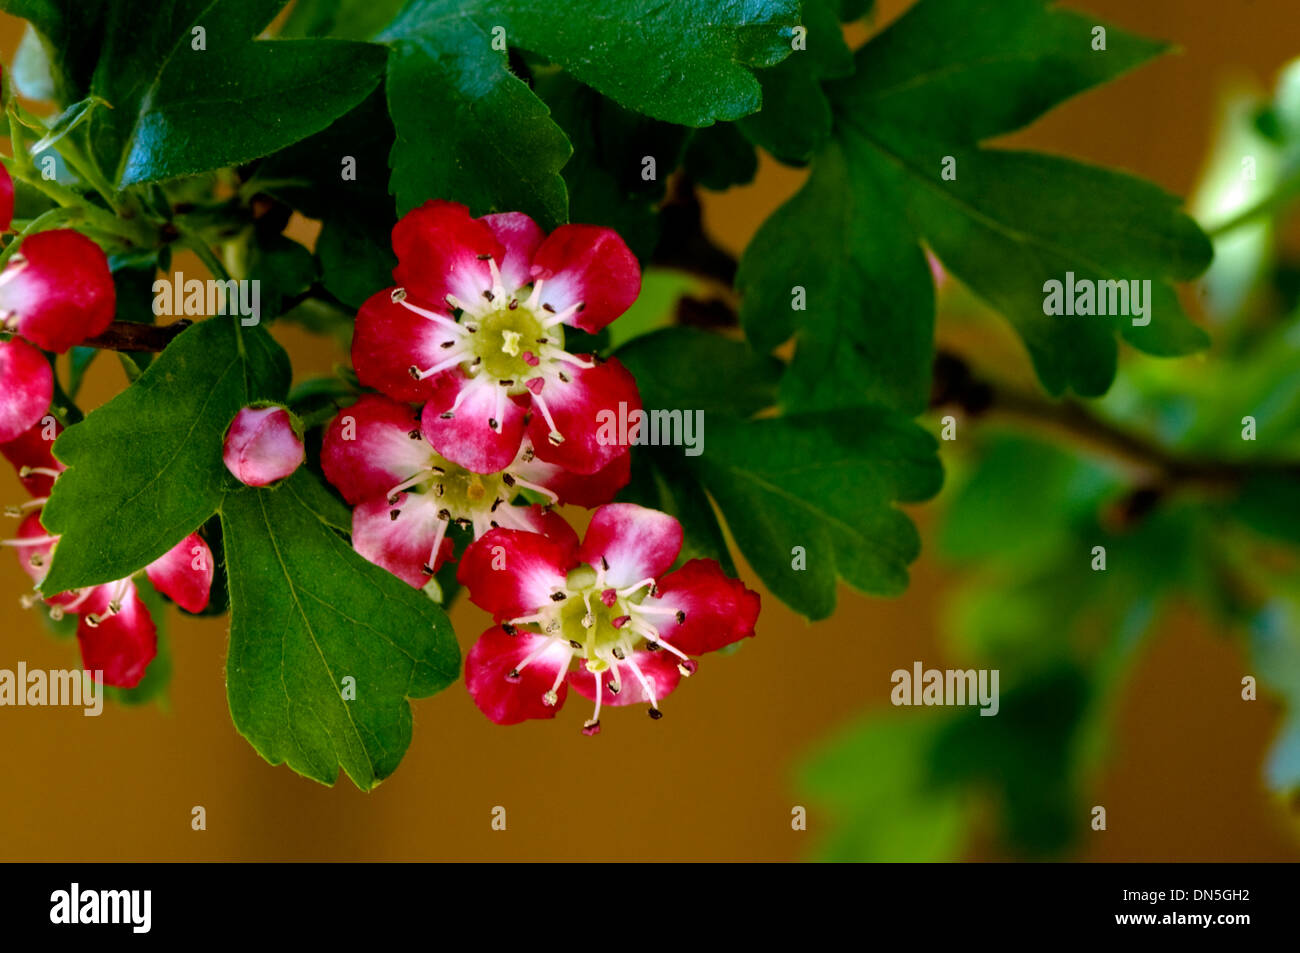 Red Flowers With White Centers Bloom In The Spring On A Tree Stock